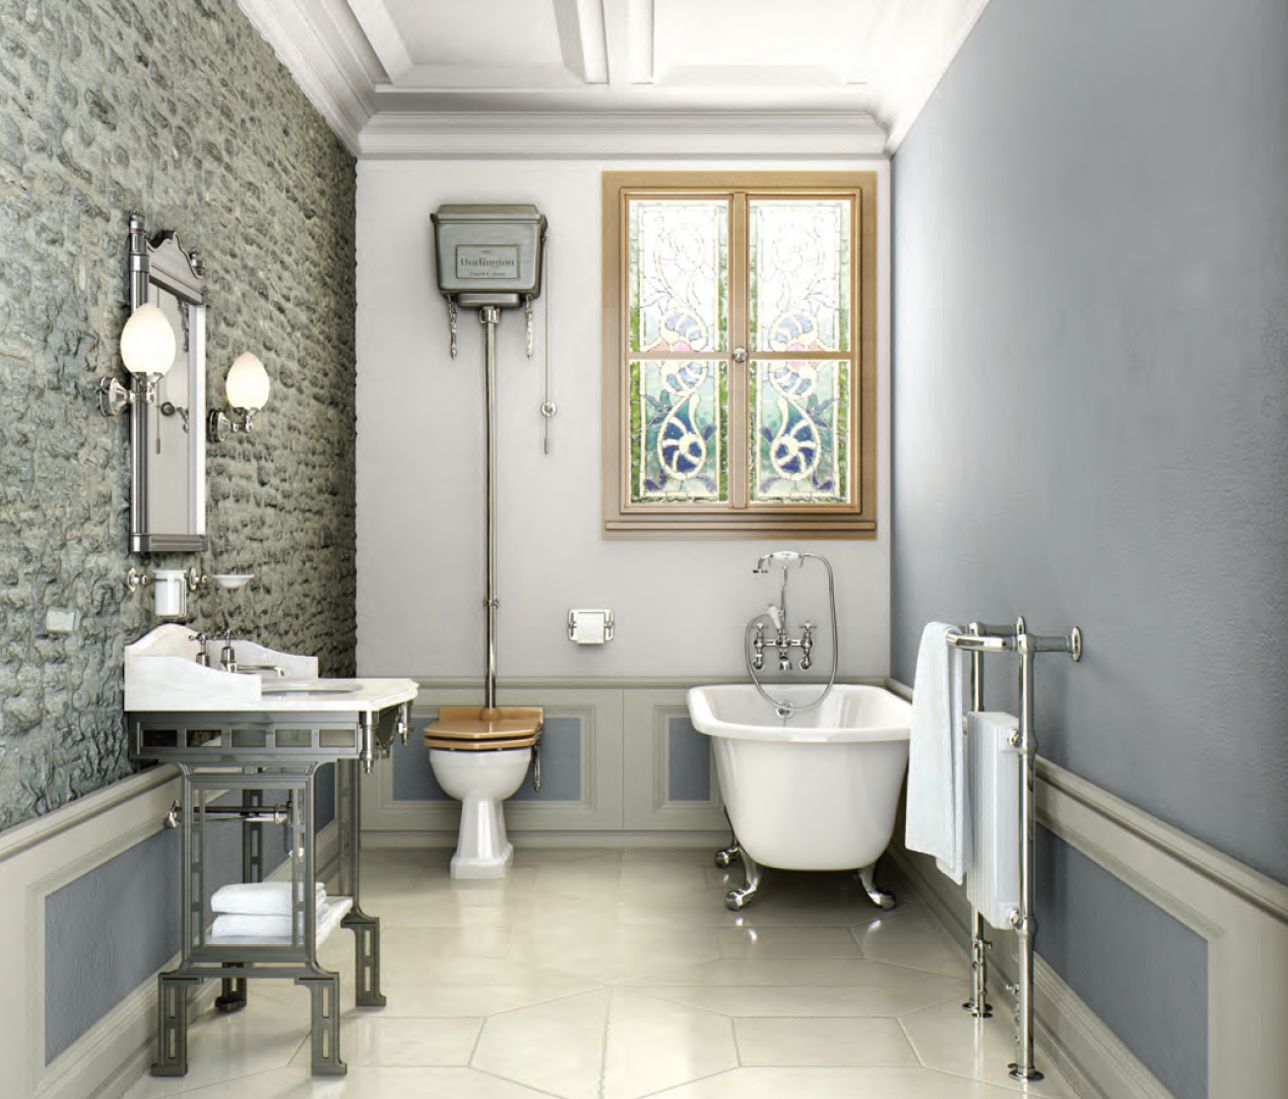 Traditional Victorian Style Tiles In A Wetroomdescription From Gorgeous Victorian Bathroom Design Ideas Review